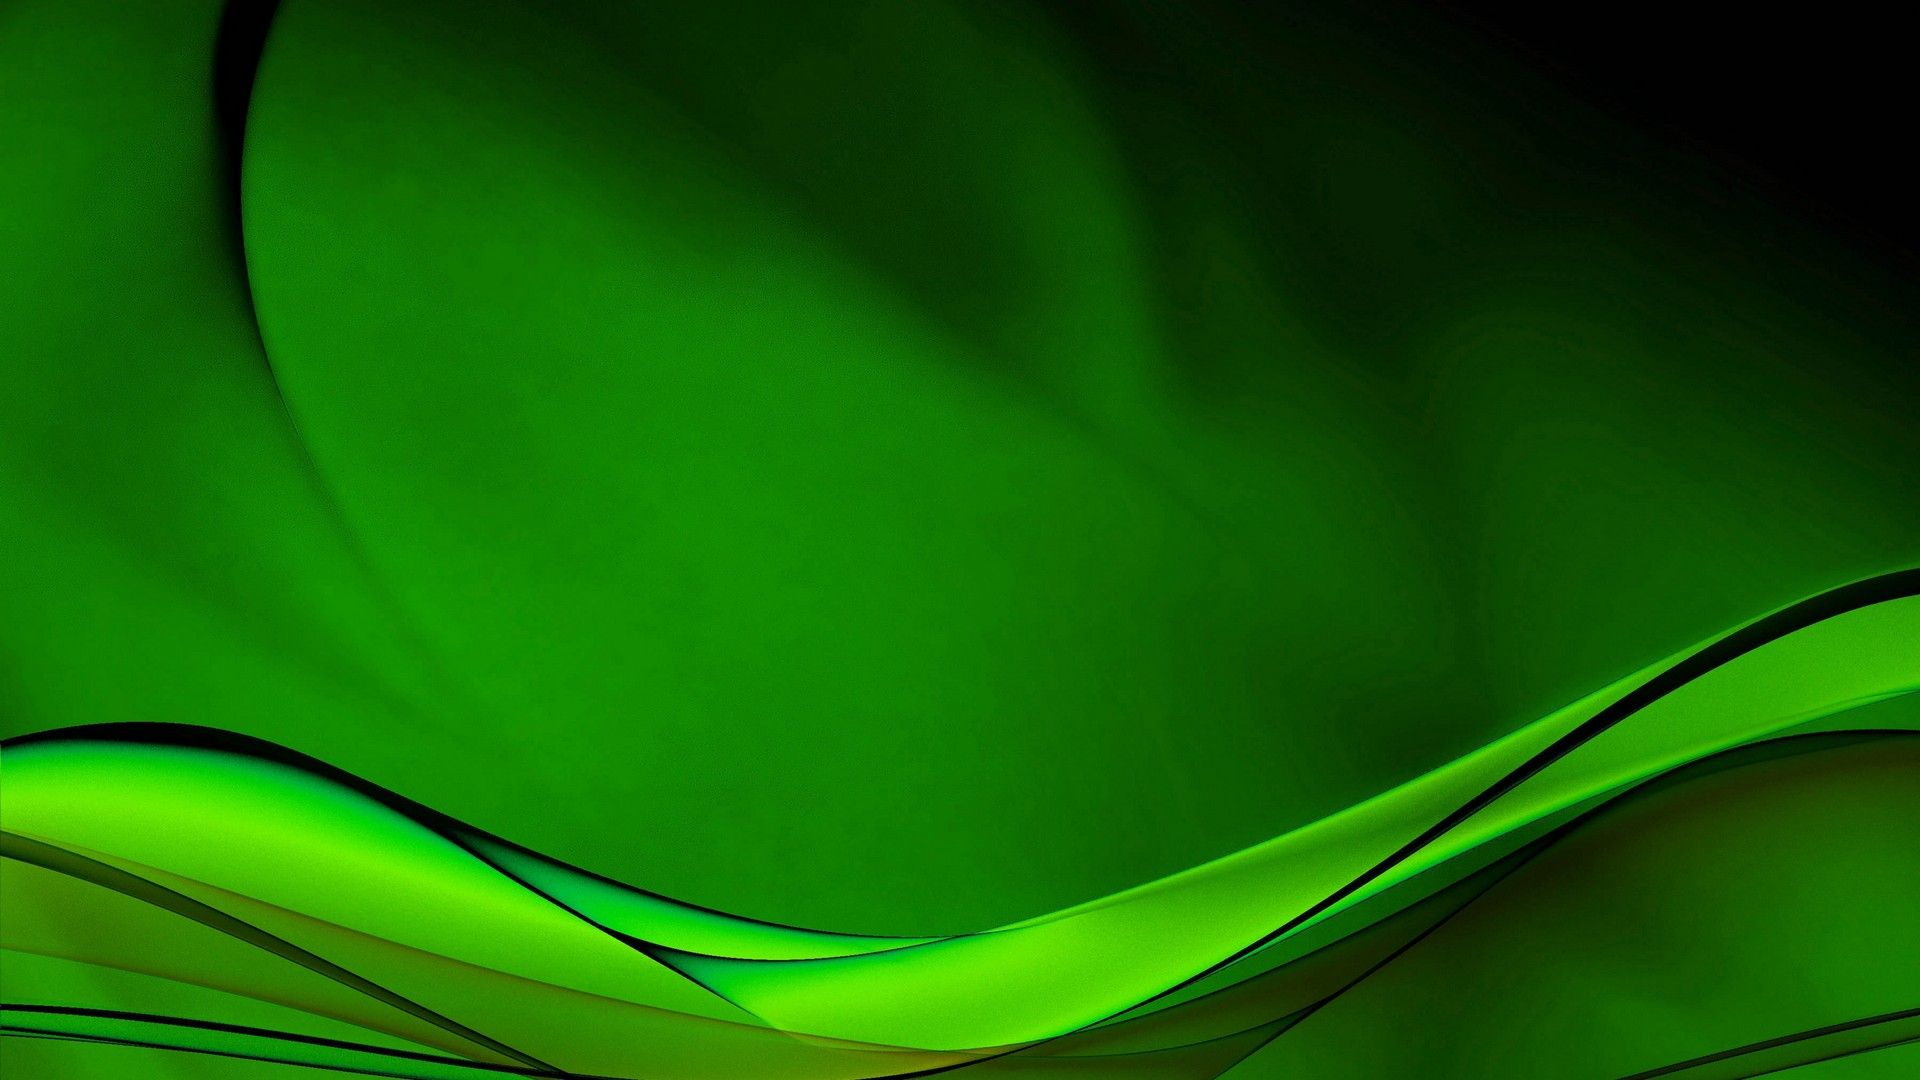 Cool Green picture hd